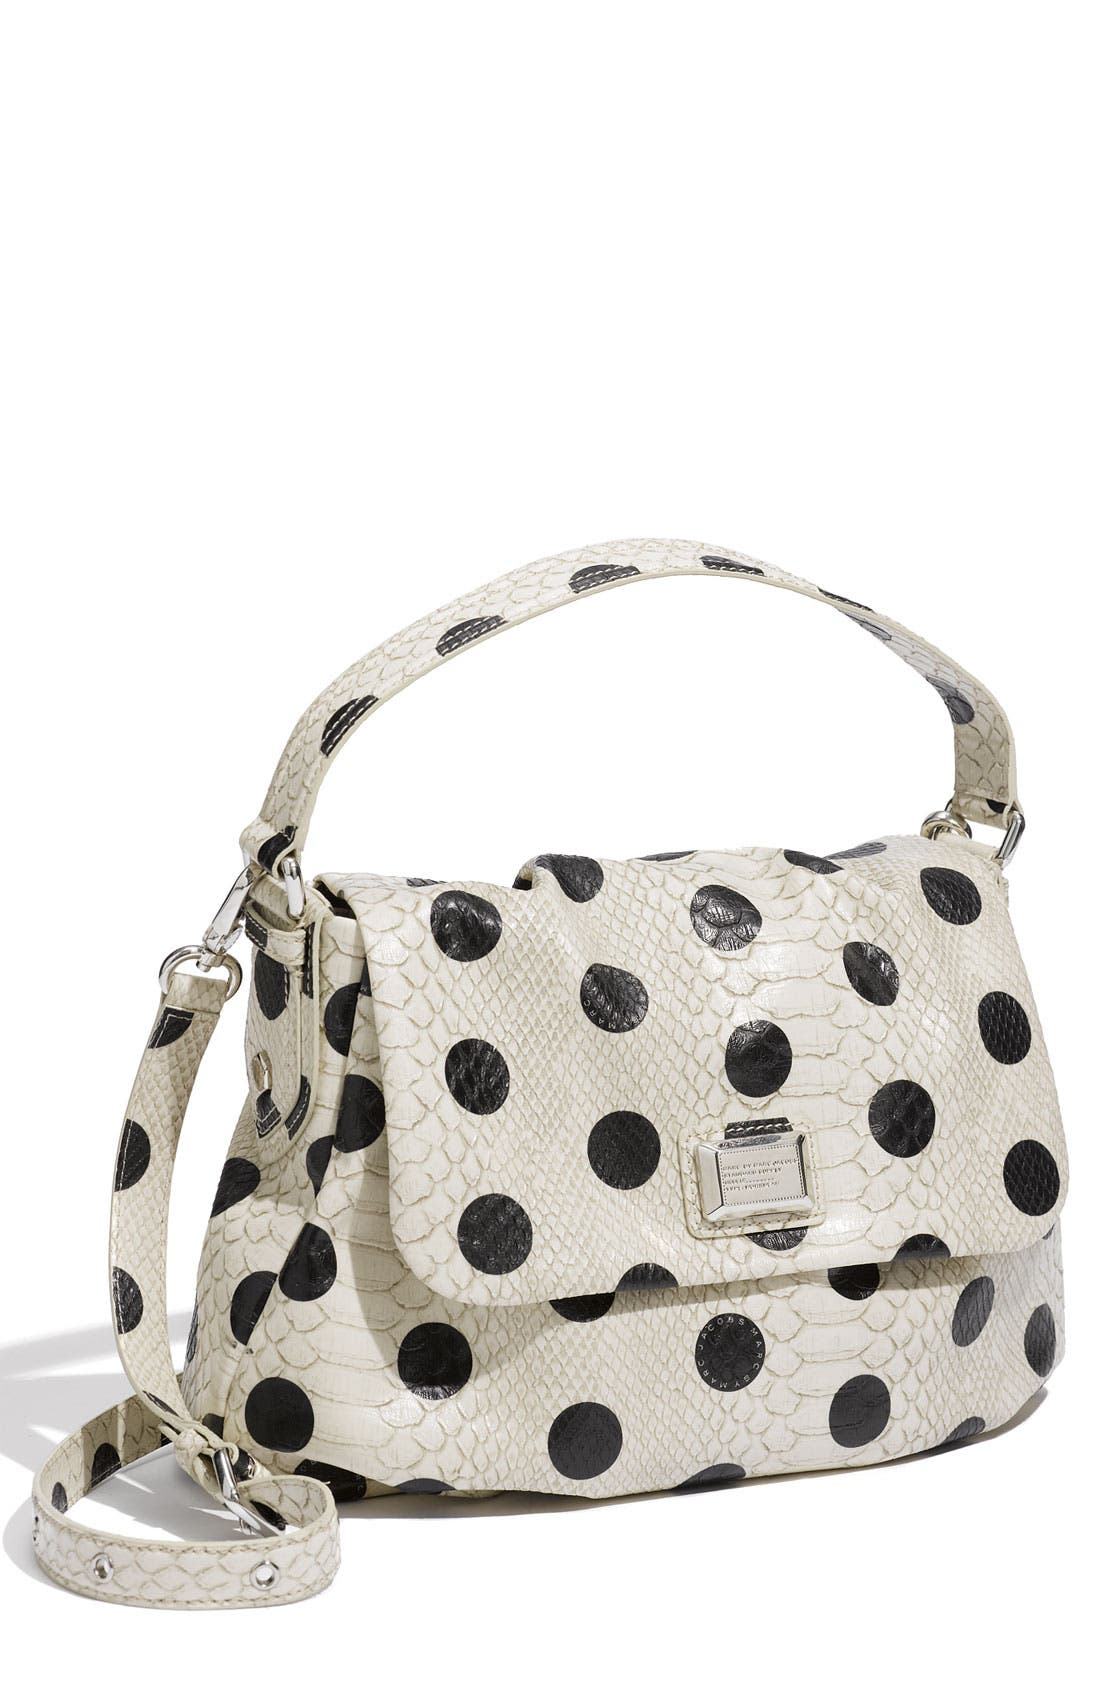 MARC BY MARC JACOBS 'Dotty Snake Little Ukita' Faux Leather Crossbody Bag,                         Main,                         color, Linen Dot Multi